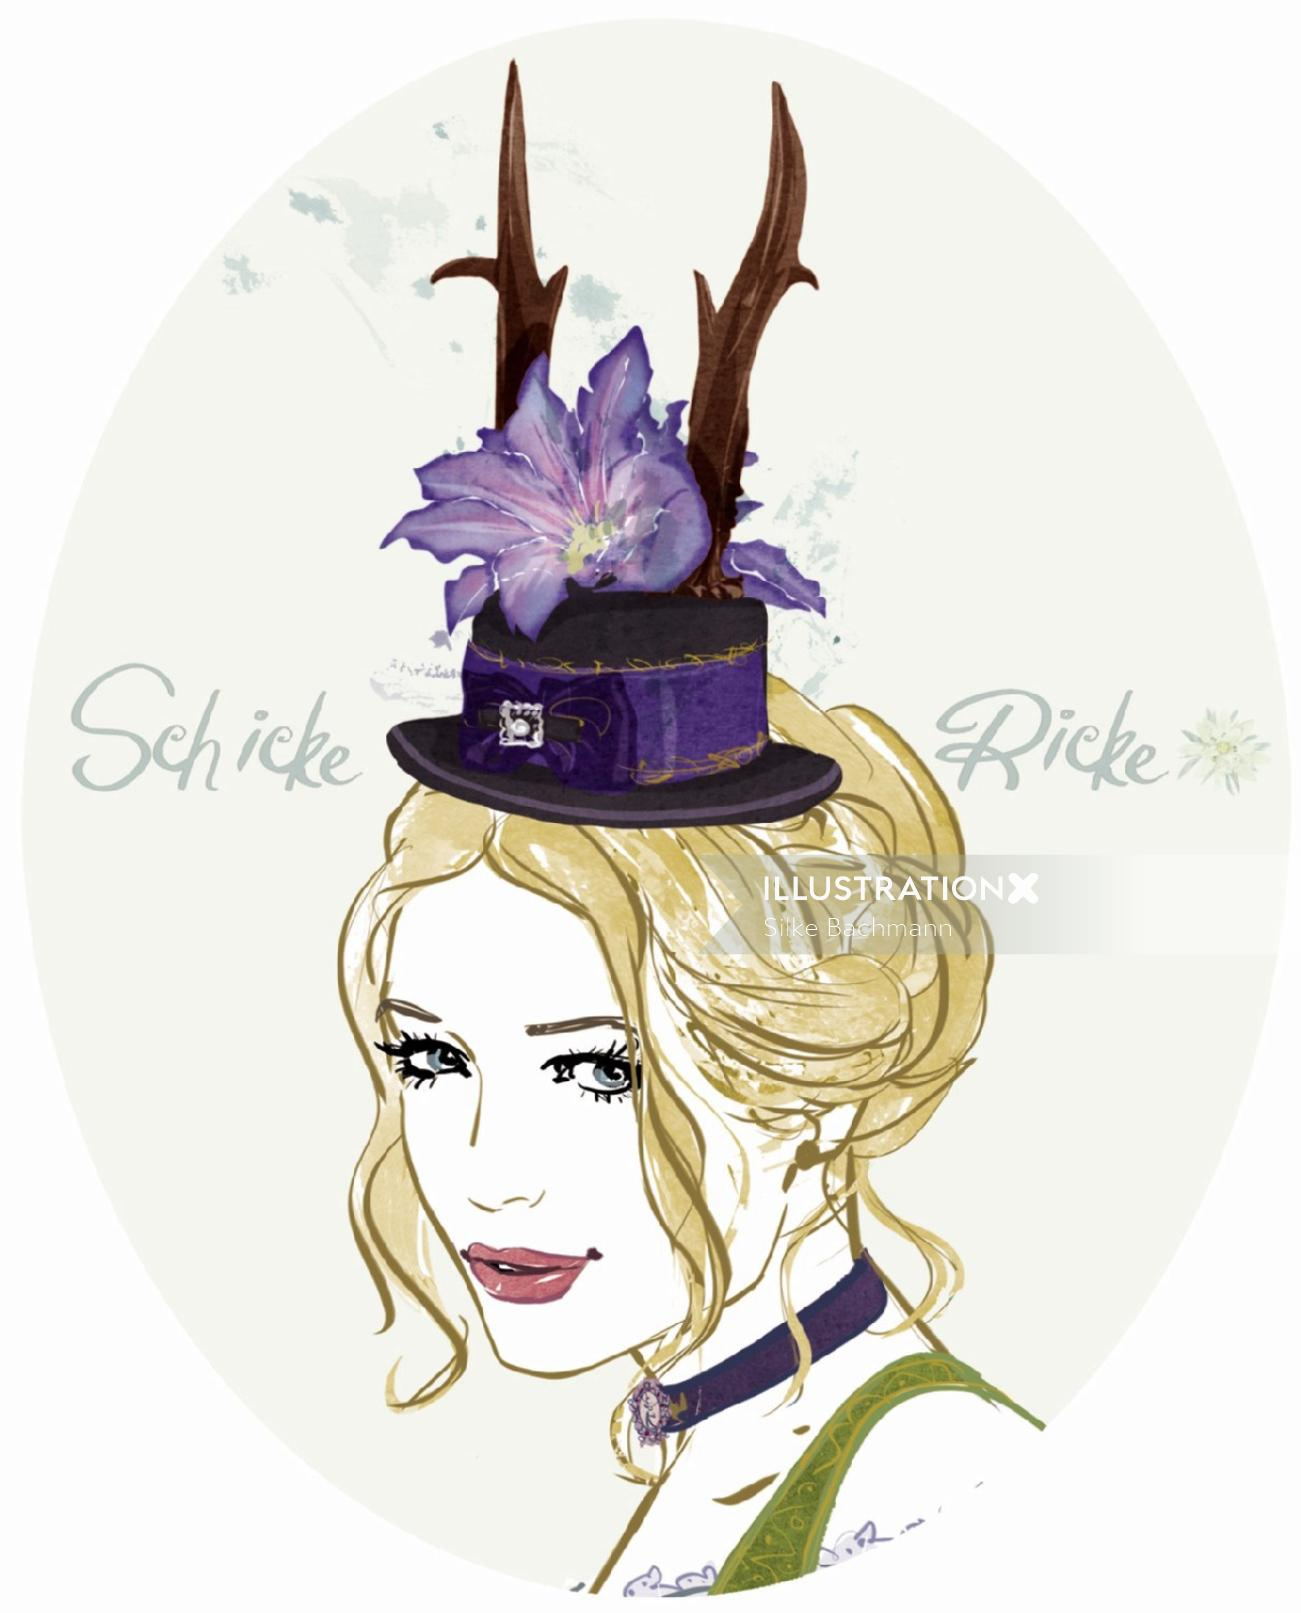 Fashion illustration of Schicke Ricke hat